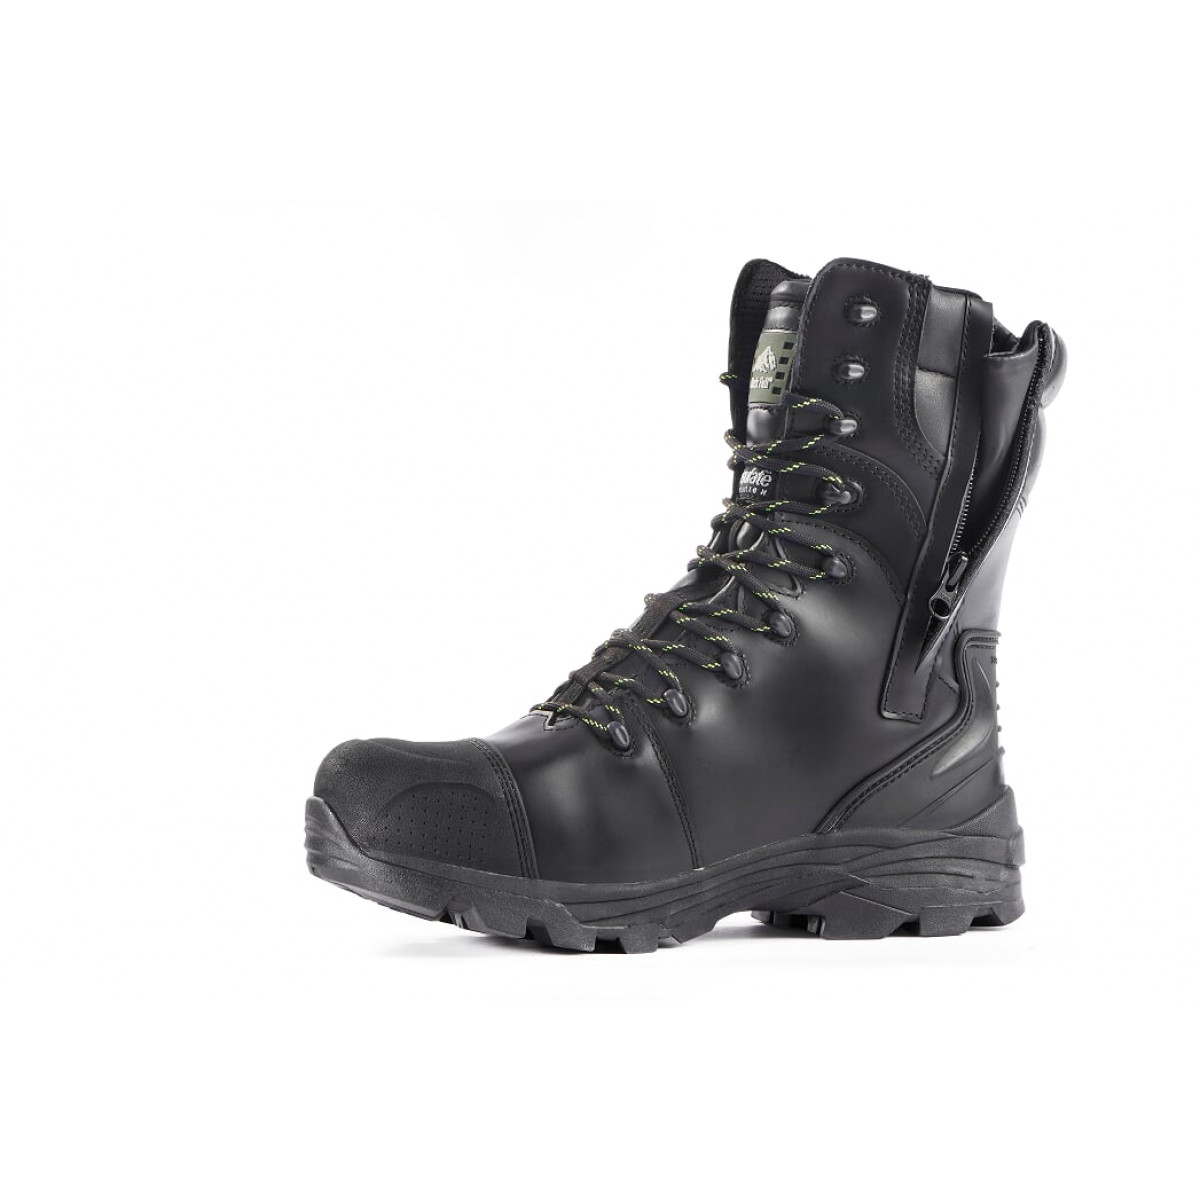 aa2d22950f8 Rock Fall Monzonite Black High Leg Metatarsal Safety Boot